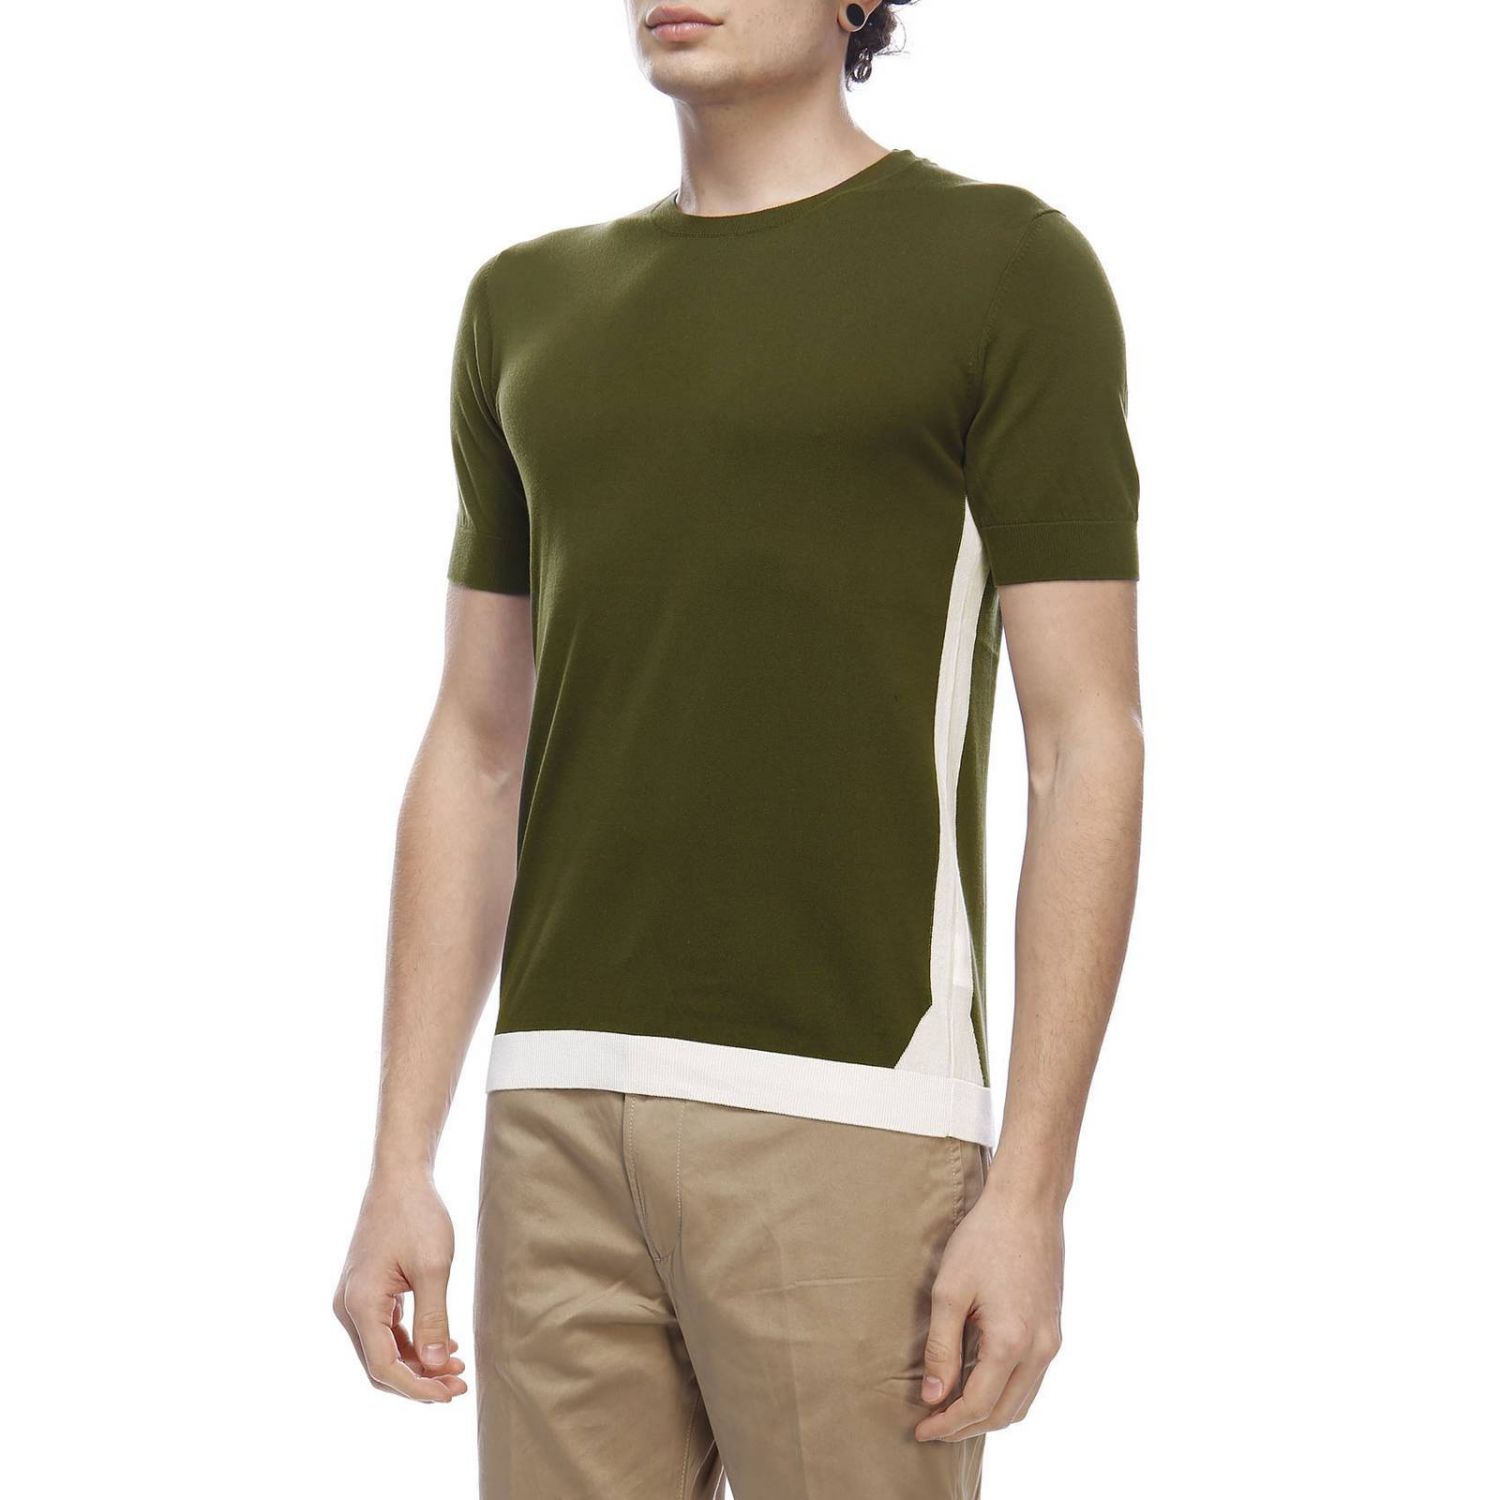 Pull homme Paolo Pecora vert militaire 2